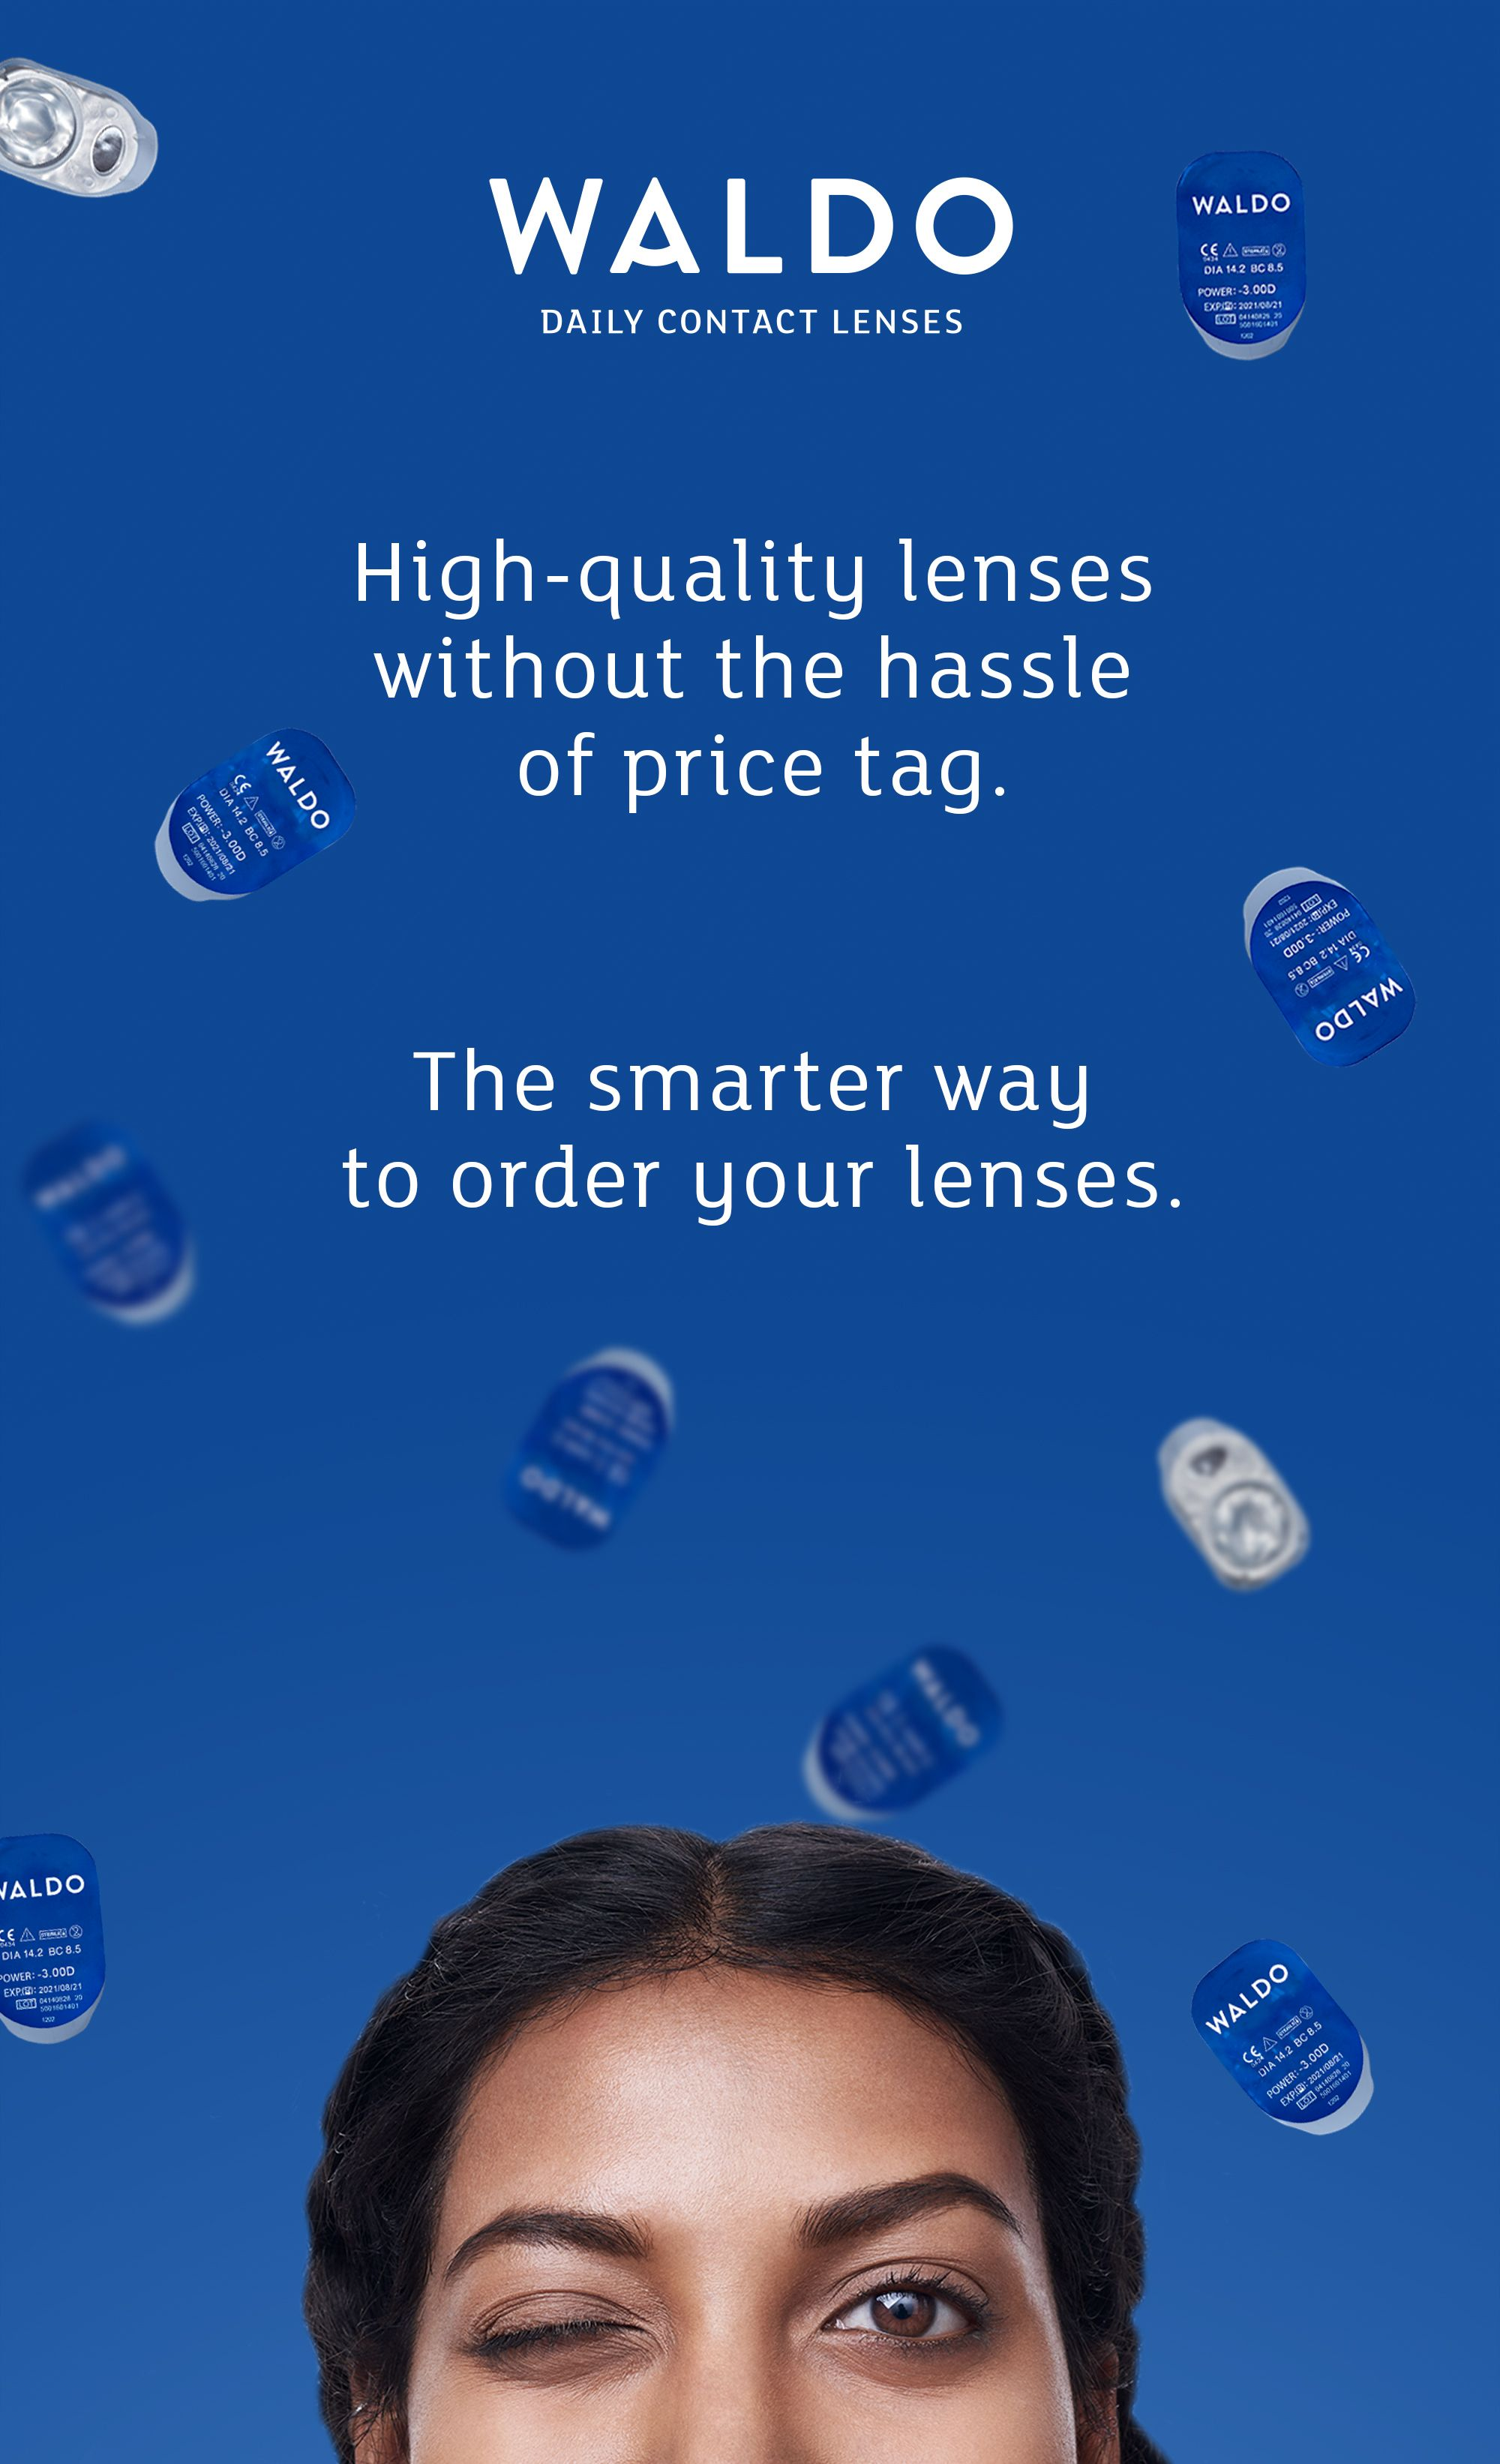 High-quality daily contact lenses without the hassle or price tag